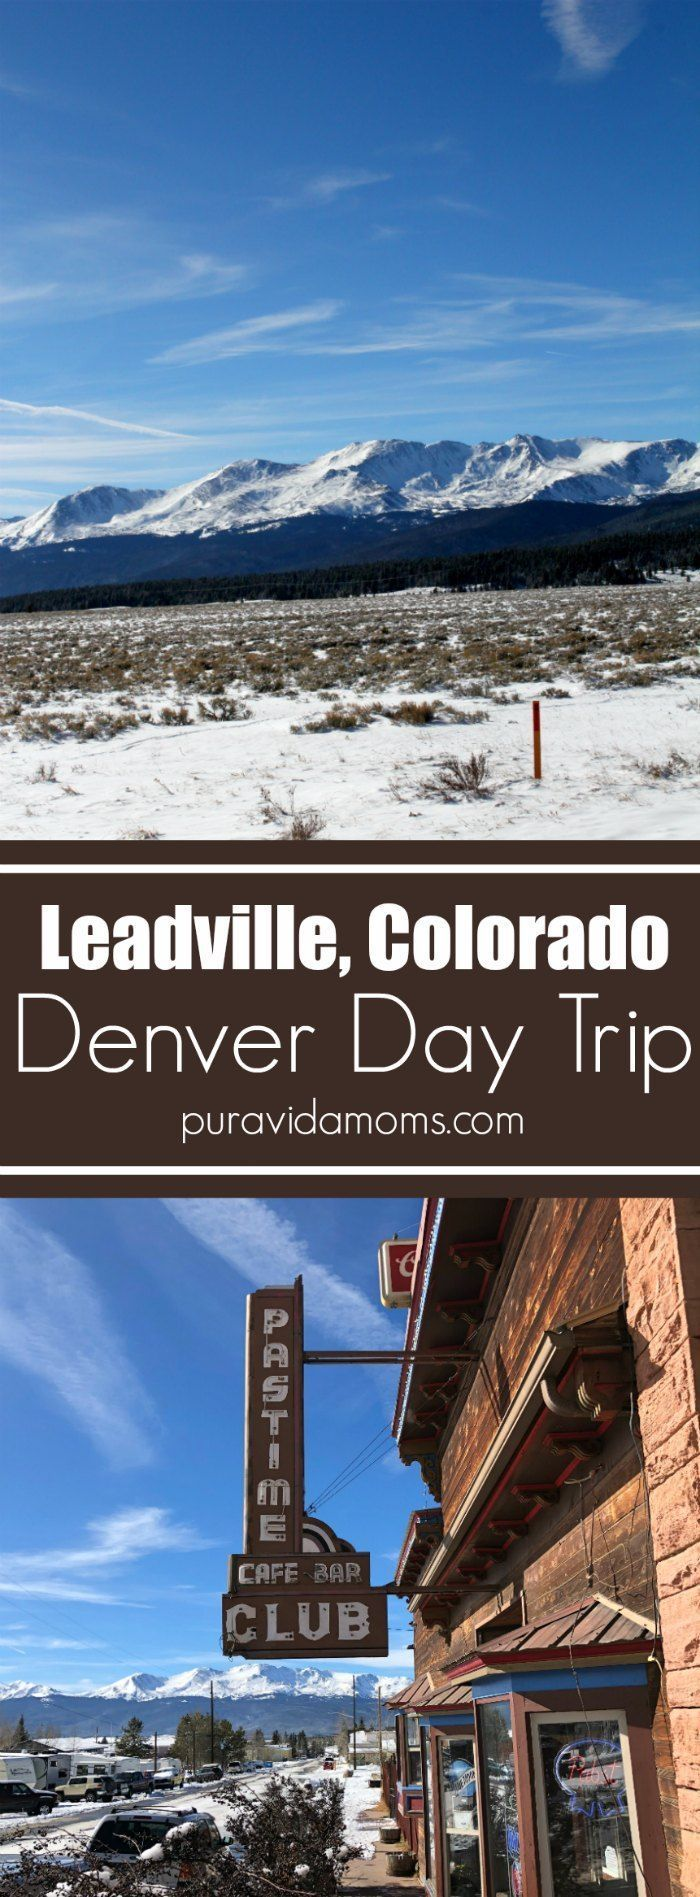 Leadville, Colorado is a great day trip from Denver- perfect for families! The scenic drive is full of stunning mountain views.